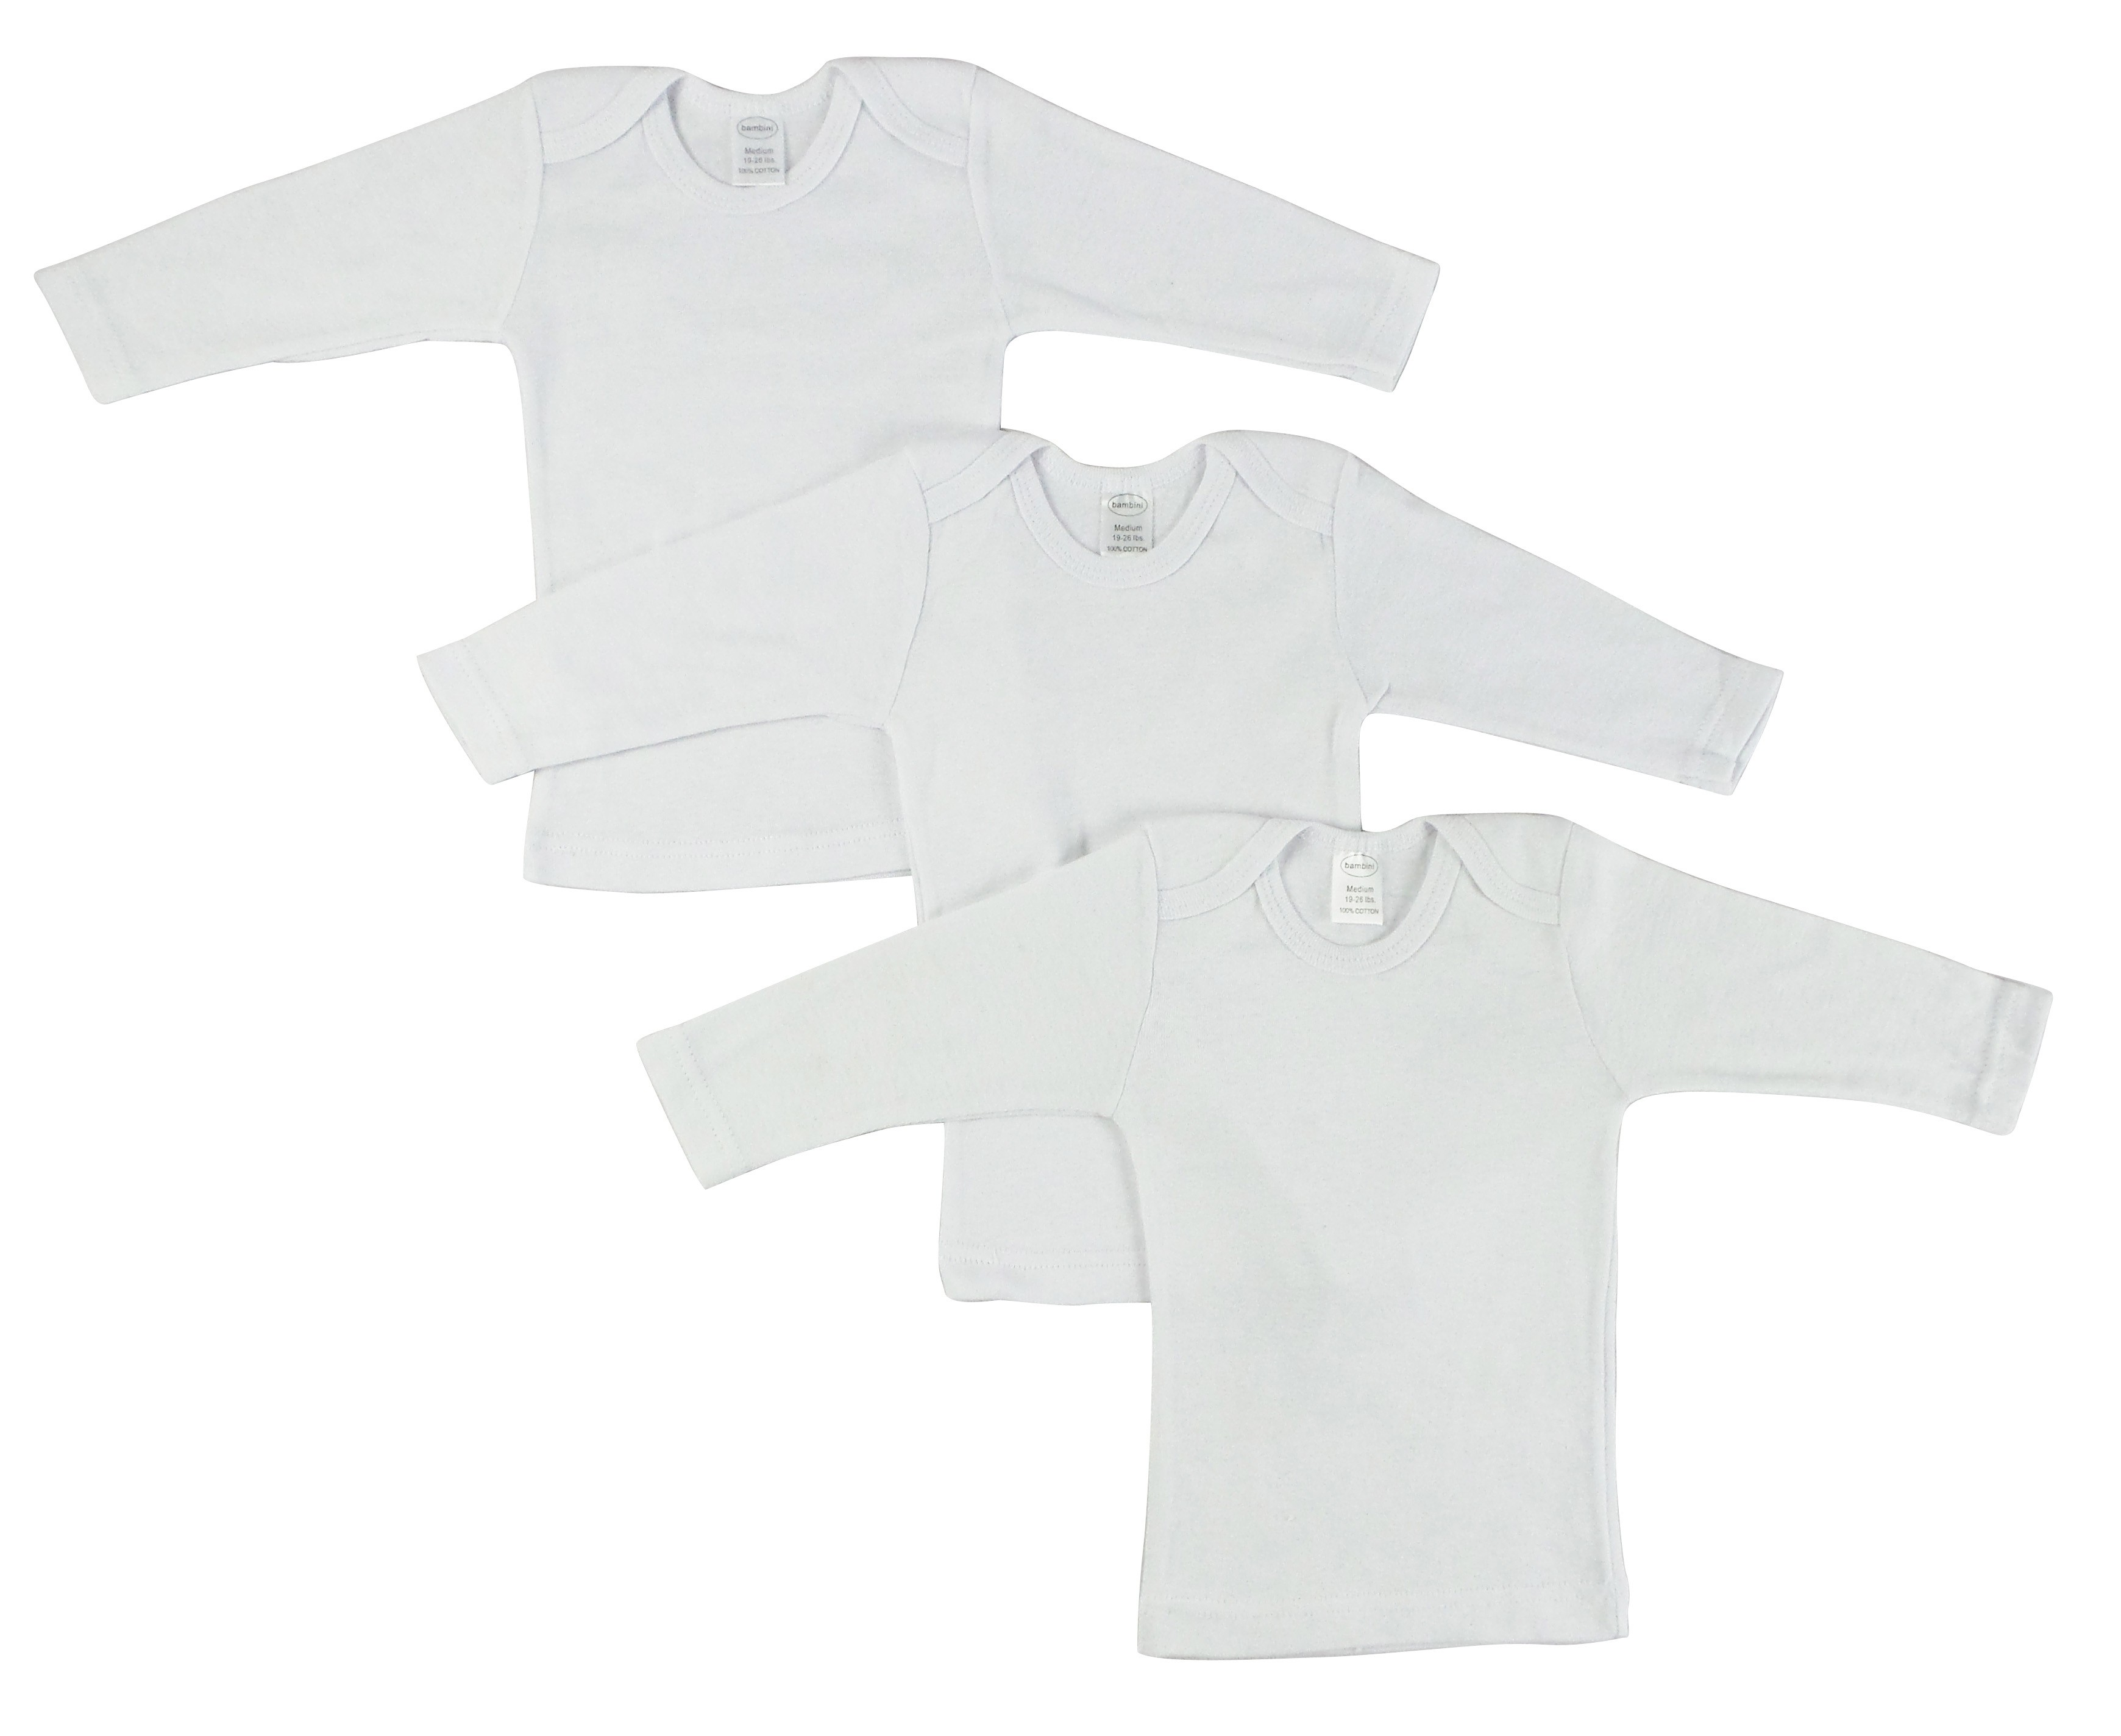 Wholesale baby clothes supplier direct from clothing manufacturer